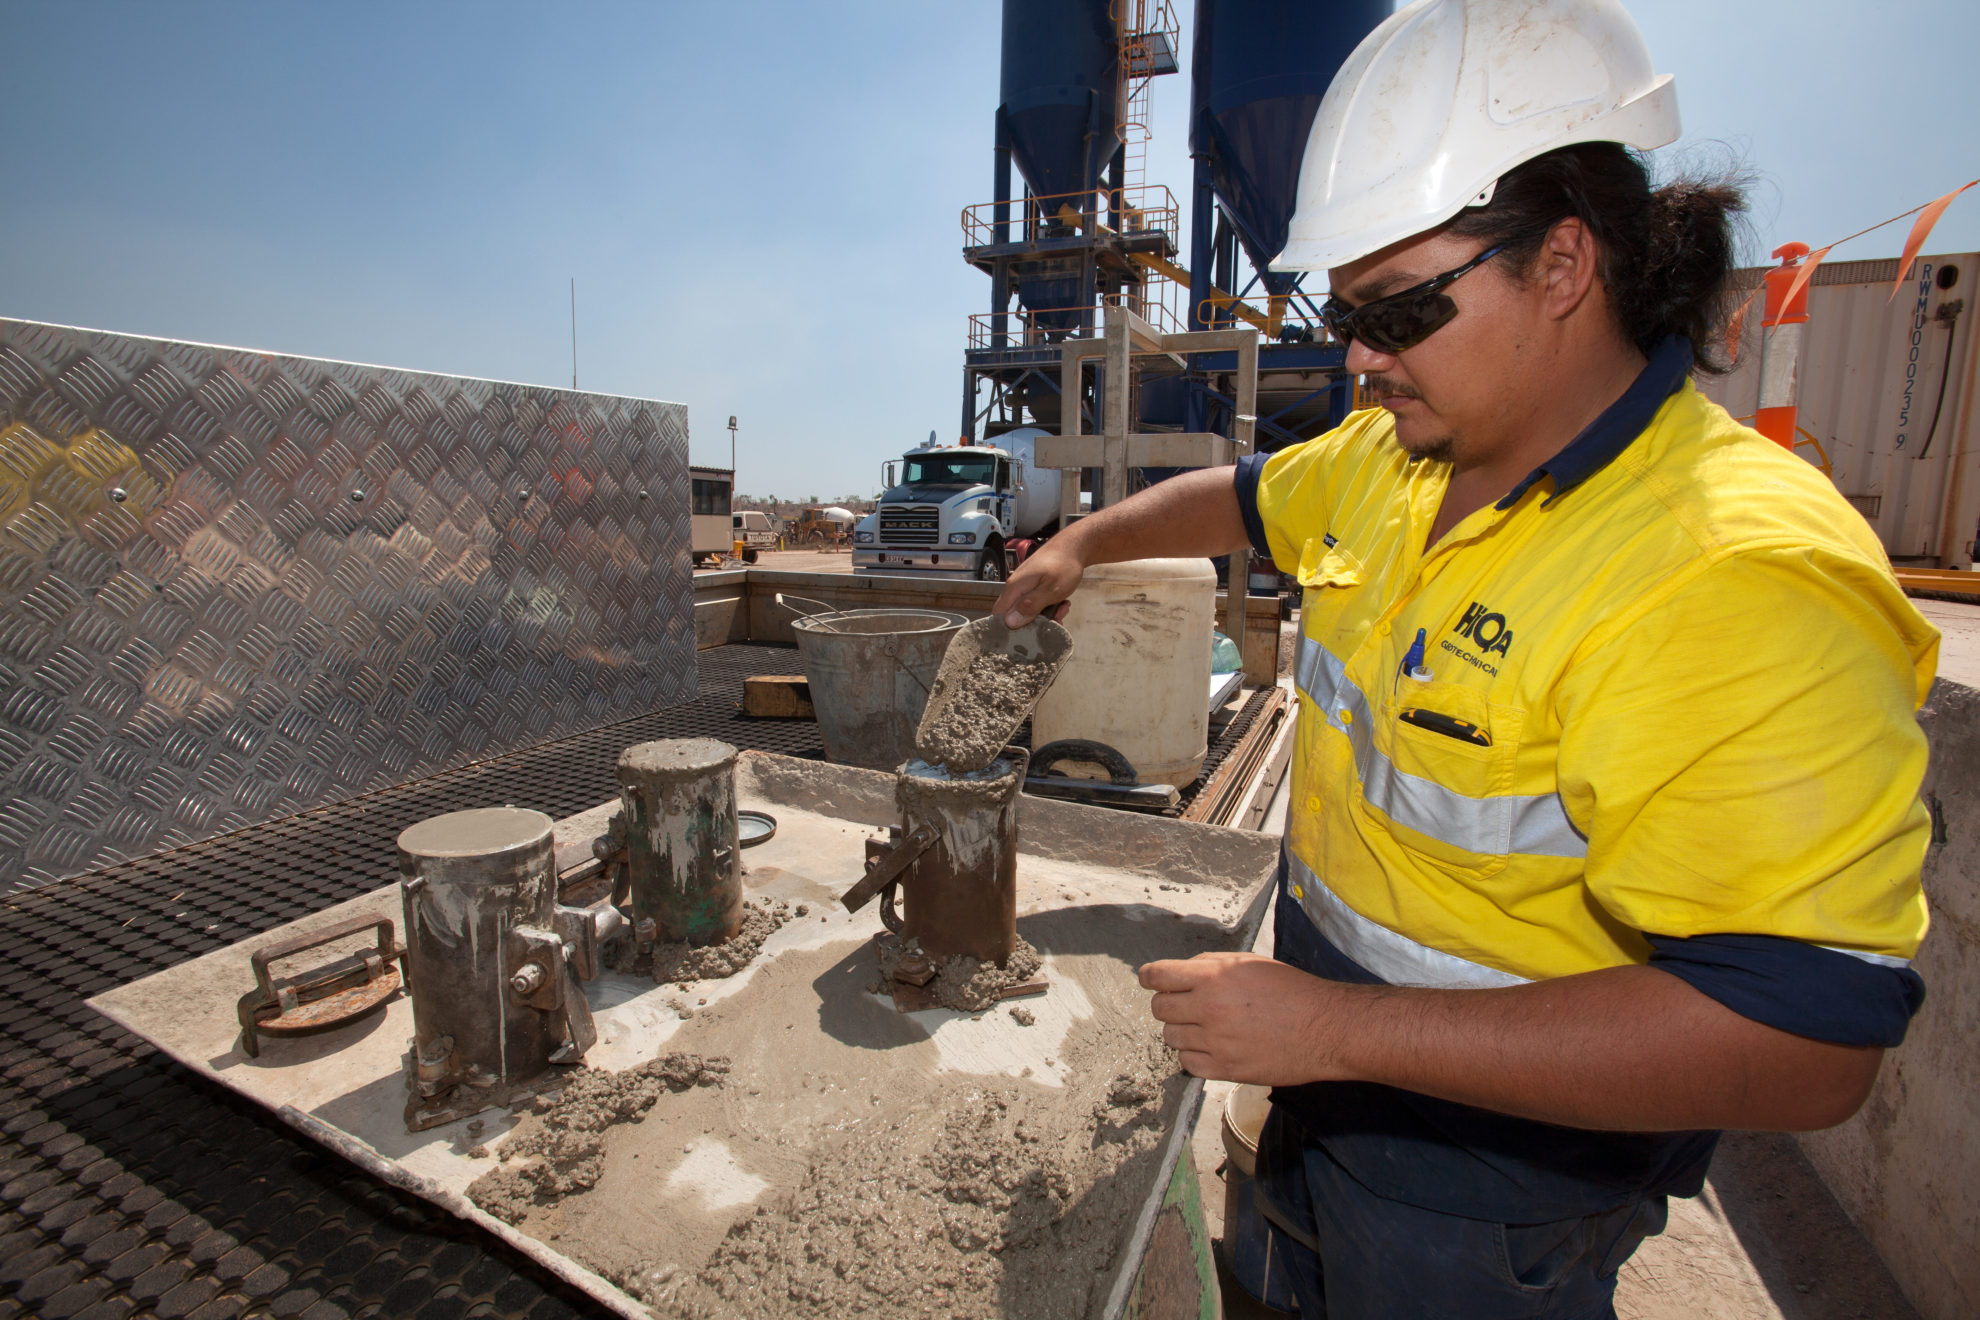 HiQa testing cement at a concrete batching plant in darwin